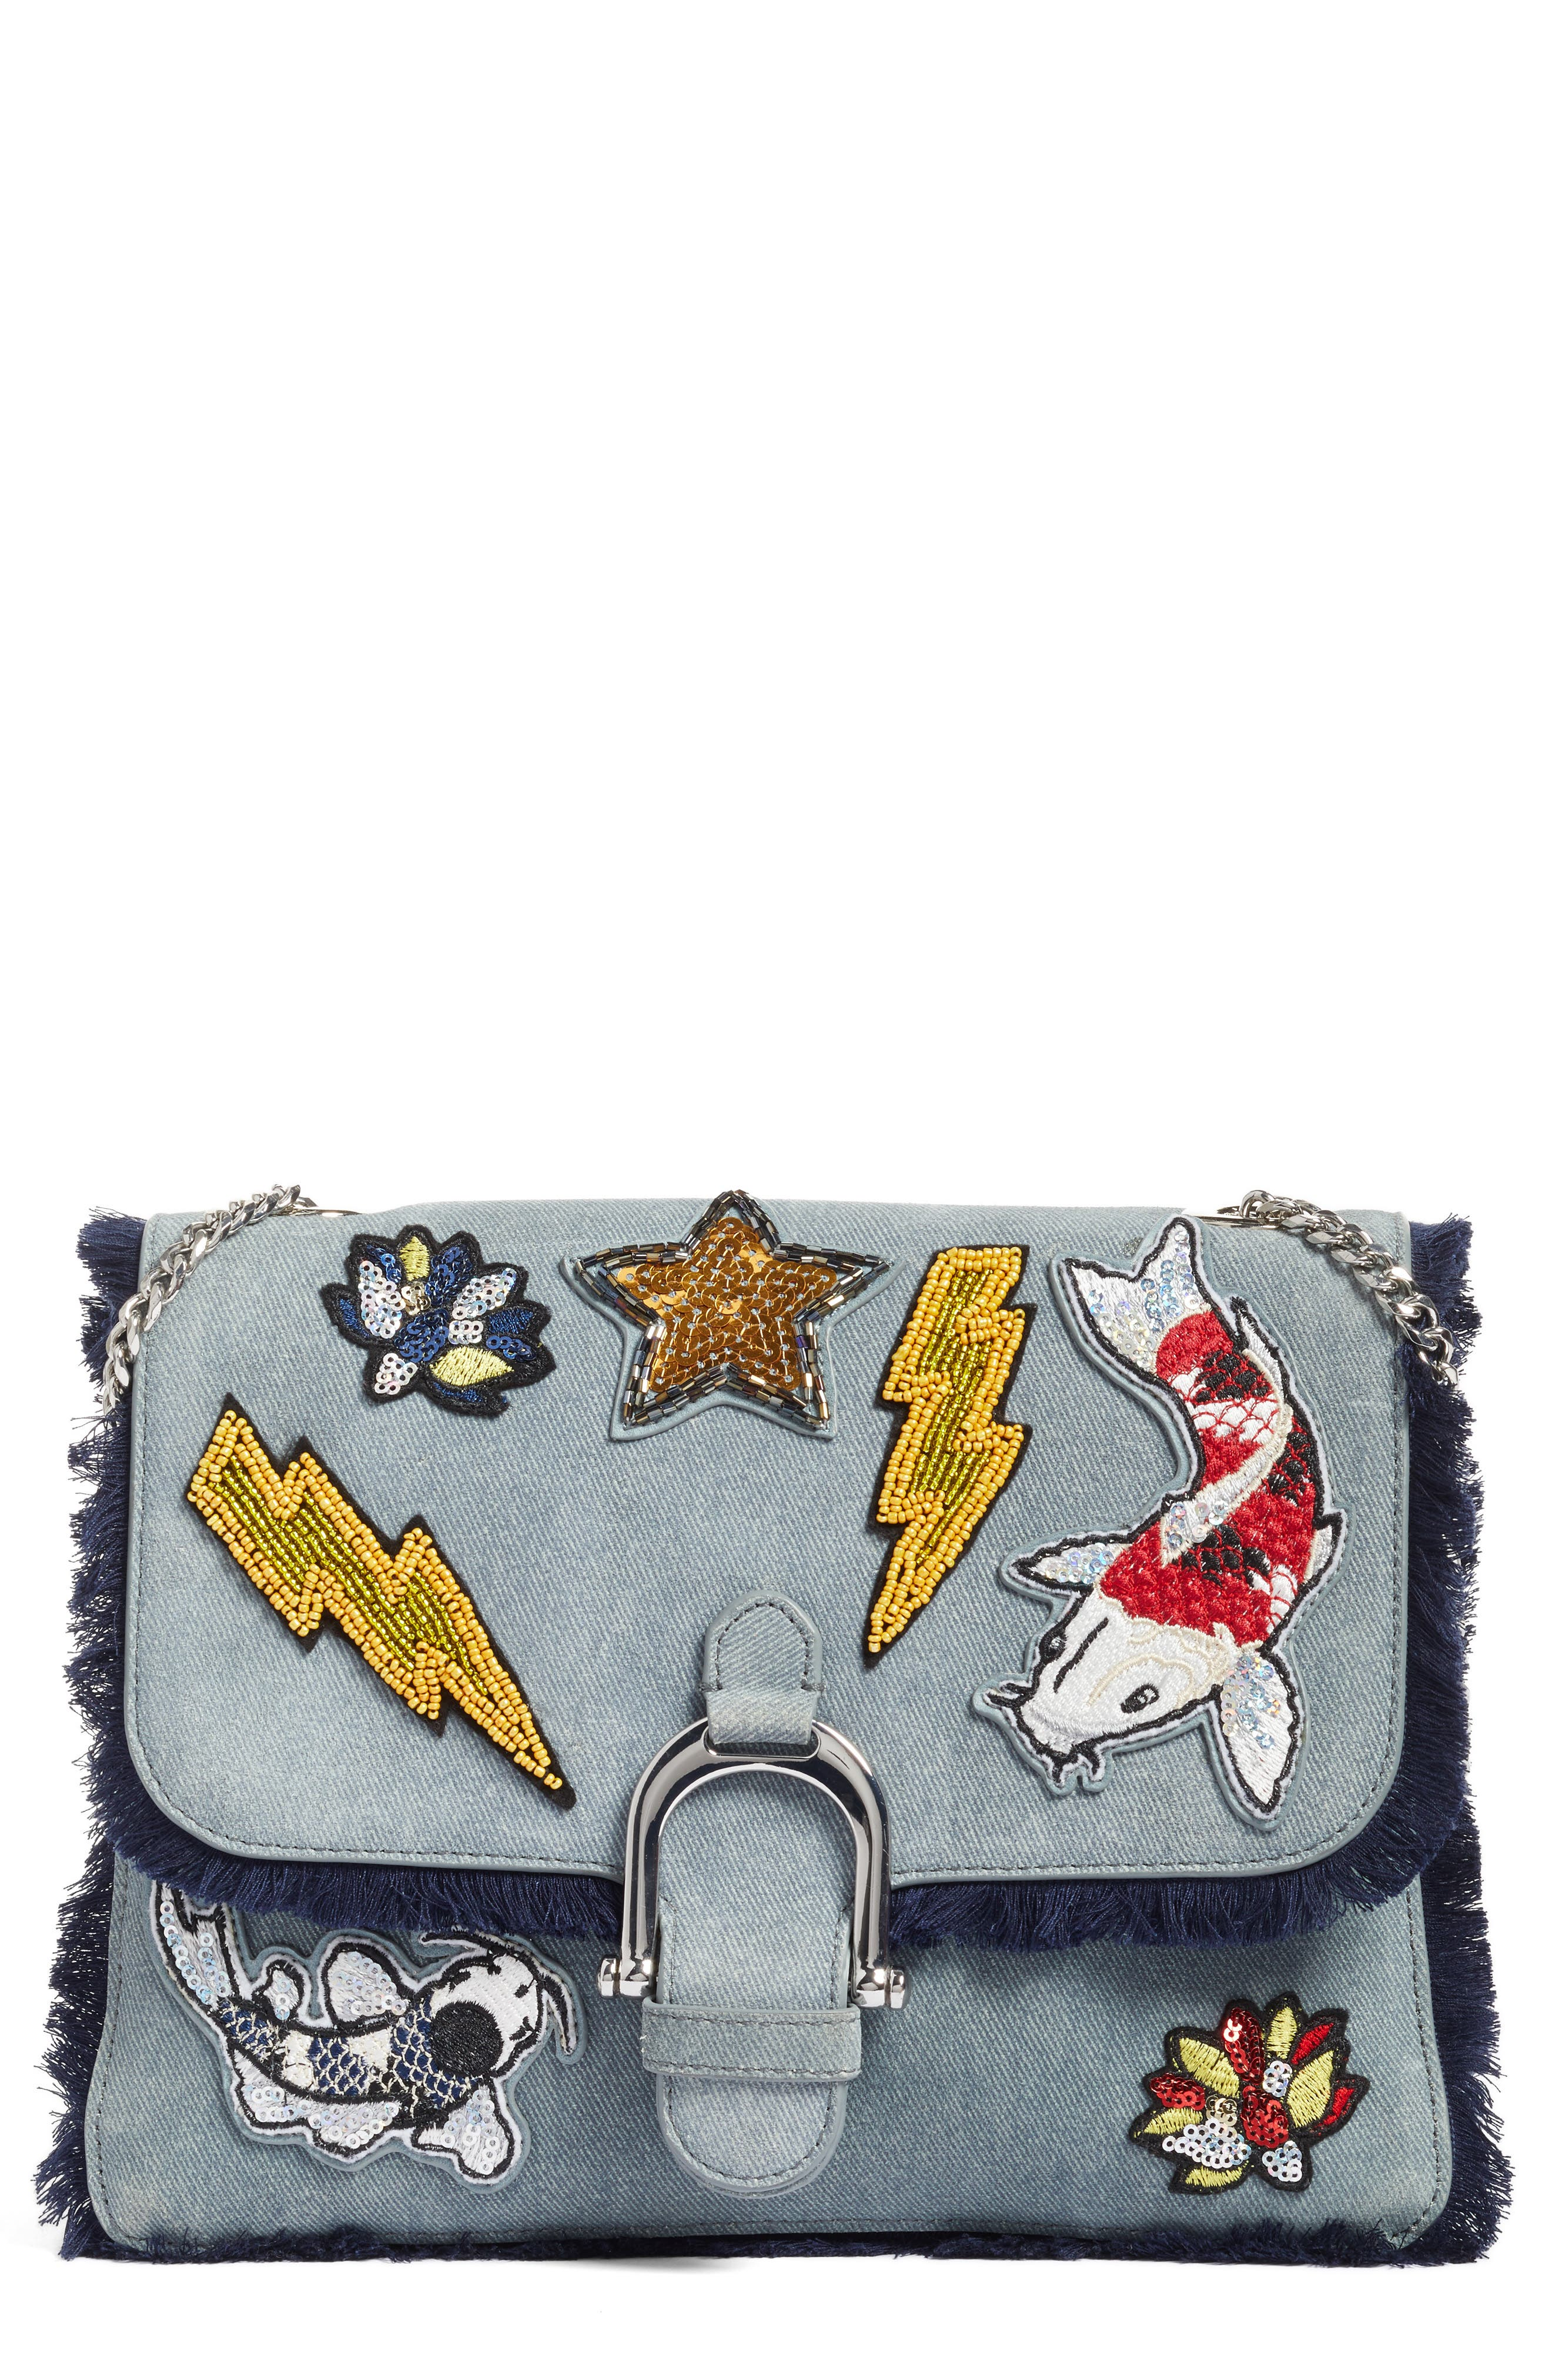 Alternate Image 1 Selected - Sam Edelman Asher Shoulder Bag